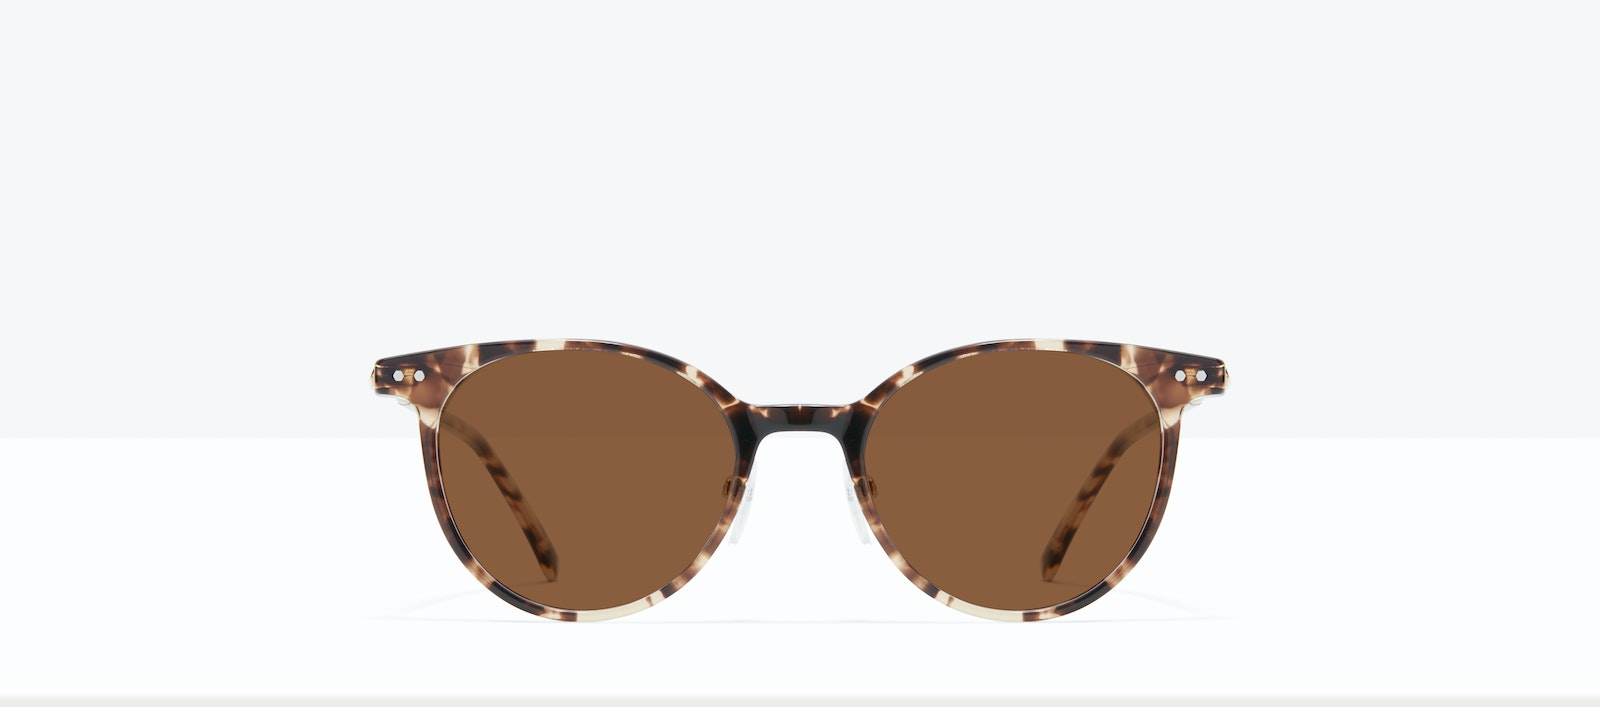 Affordable Fashion Glasses Round Sunglasses Women Lightheart L Leopard Front